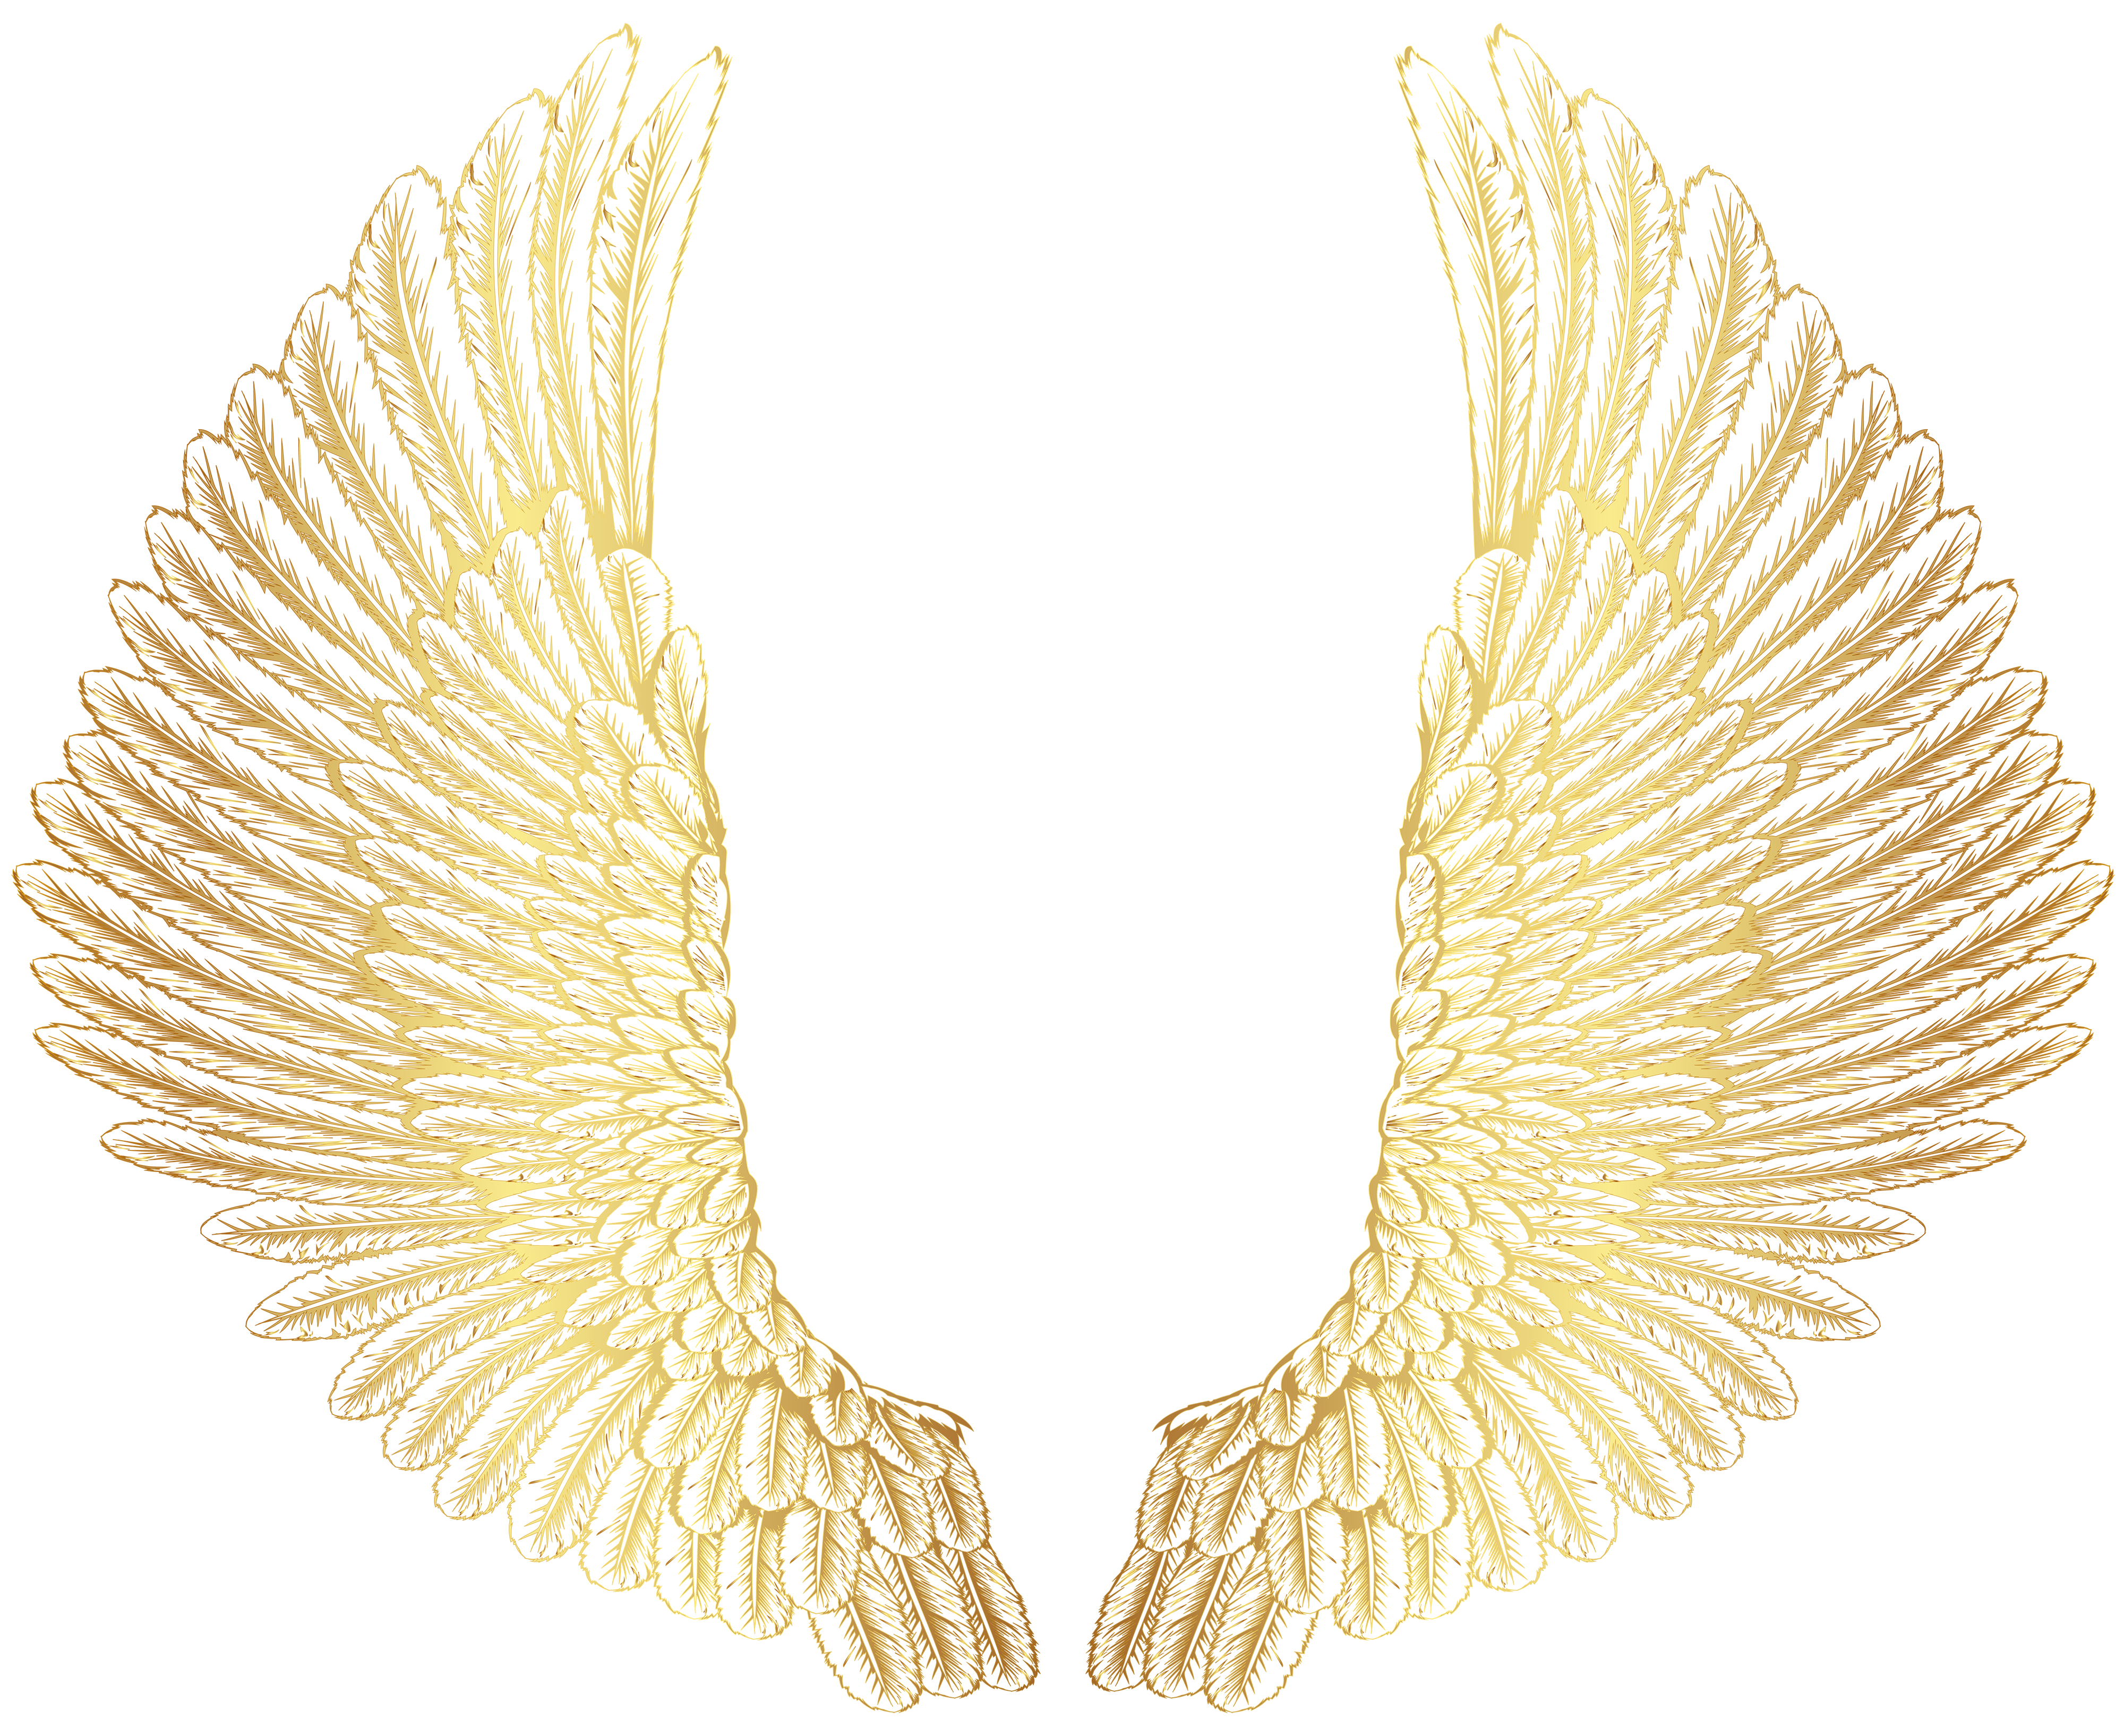 Gold wings clipart picture transparent stock Gold Wings PNG Clip Art Image | Gallery Yopriceville - High-Quality ... picture transparent stock